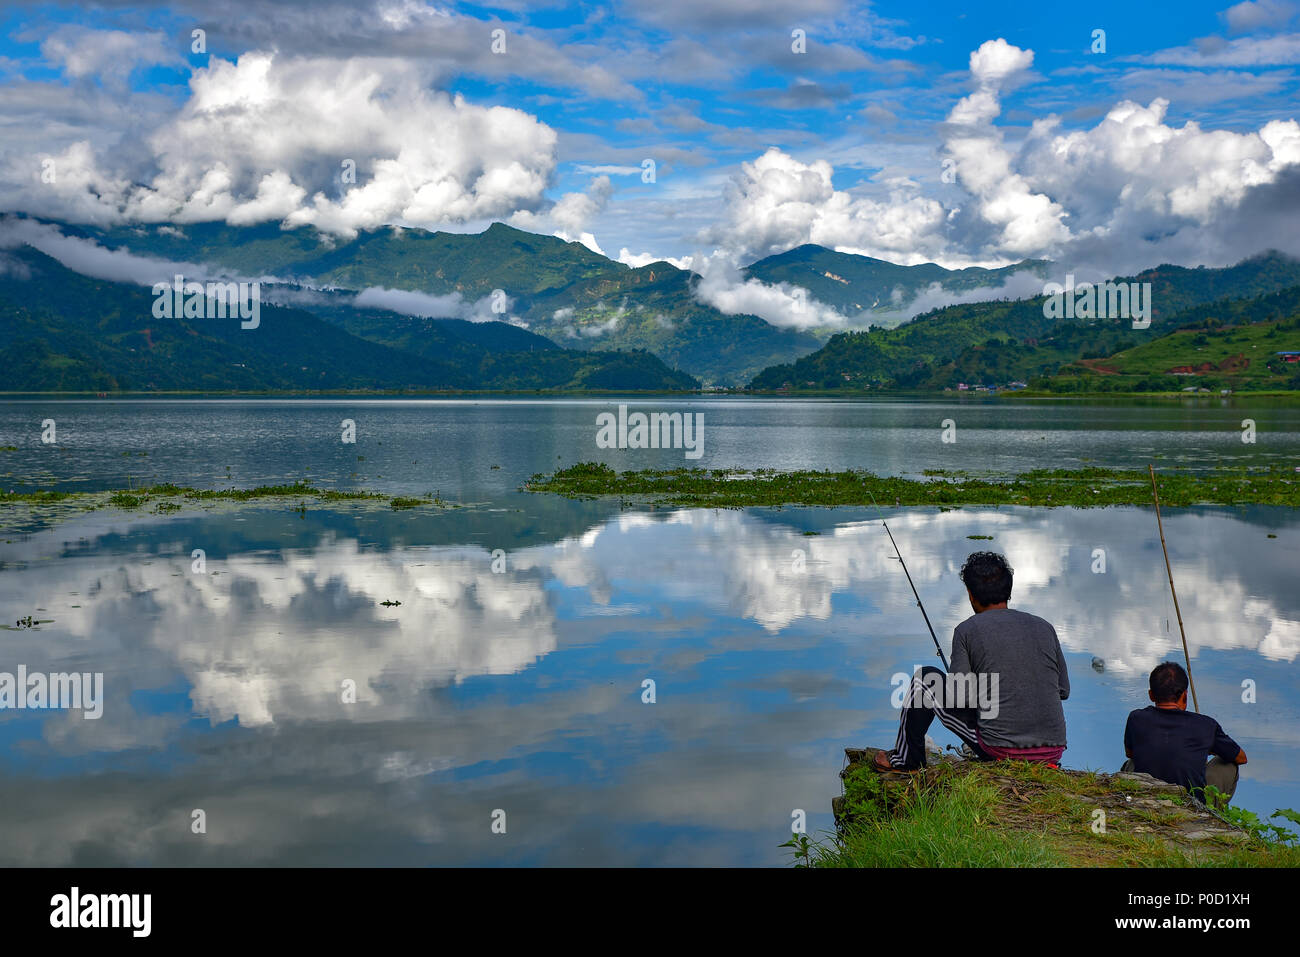 Two men fishing at Fewa Lake, Pokhara, Nepal - Stock Image